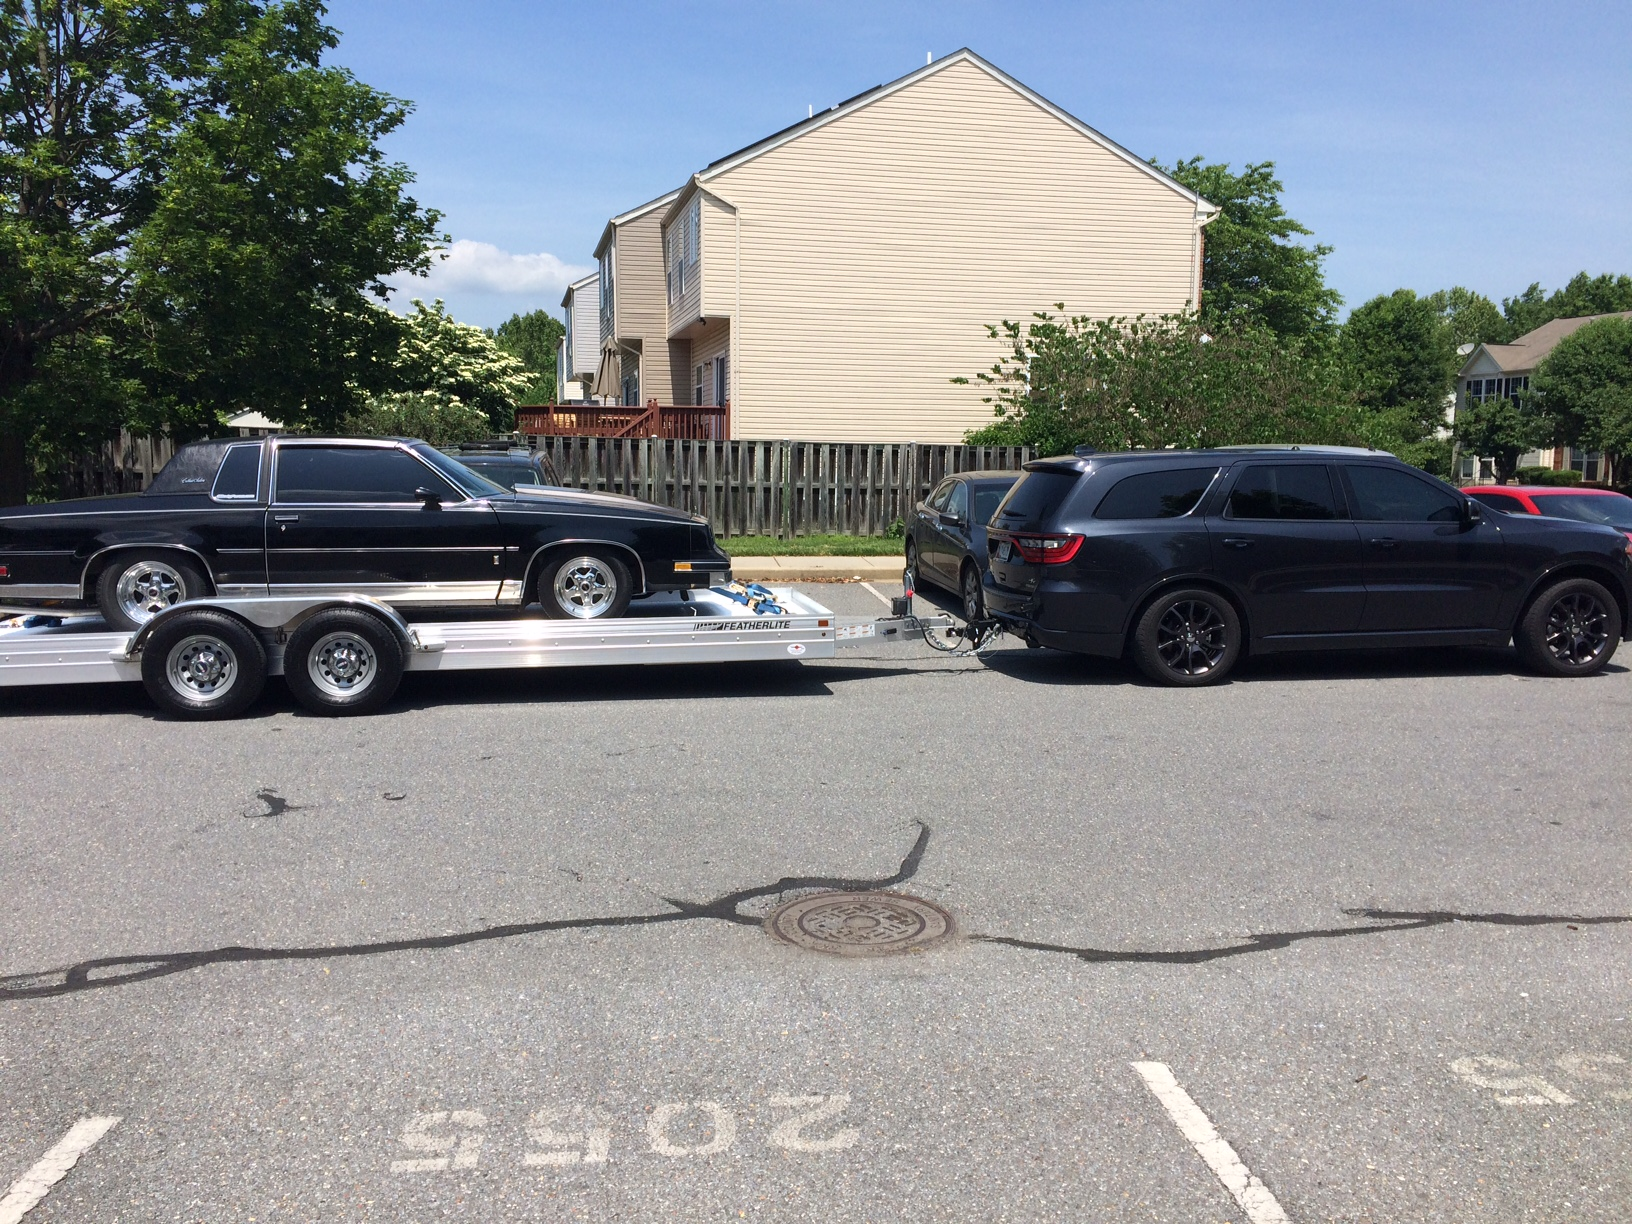 Let's see those Durango towing pics!-img_4514.jpg